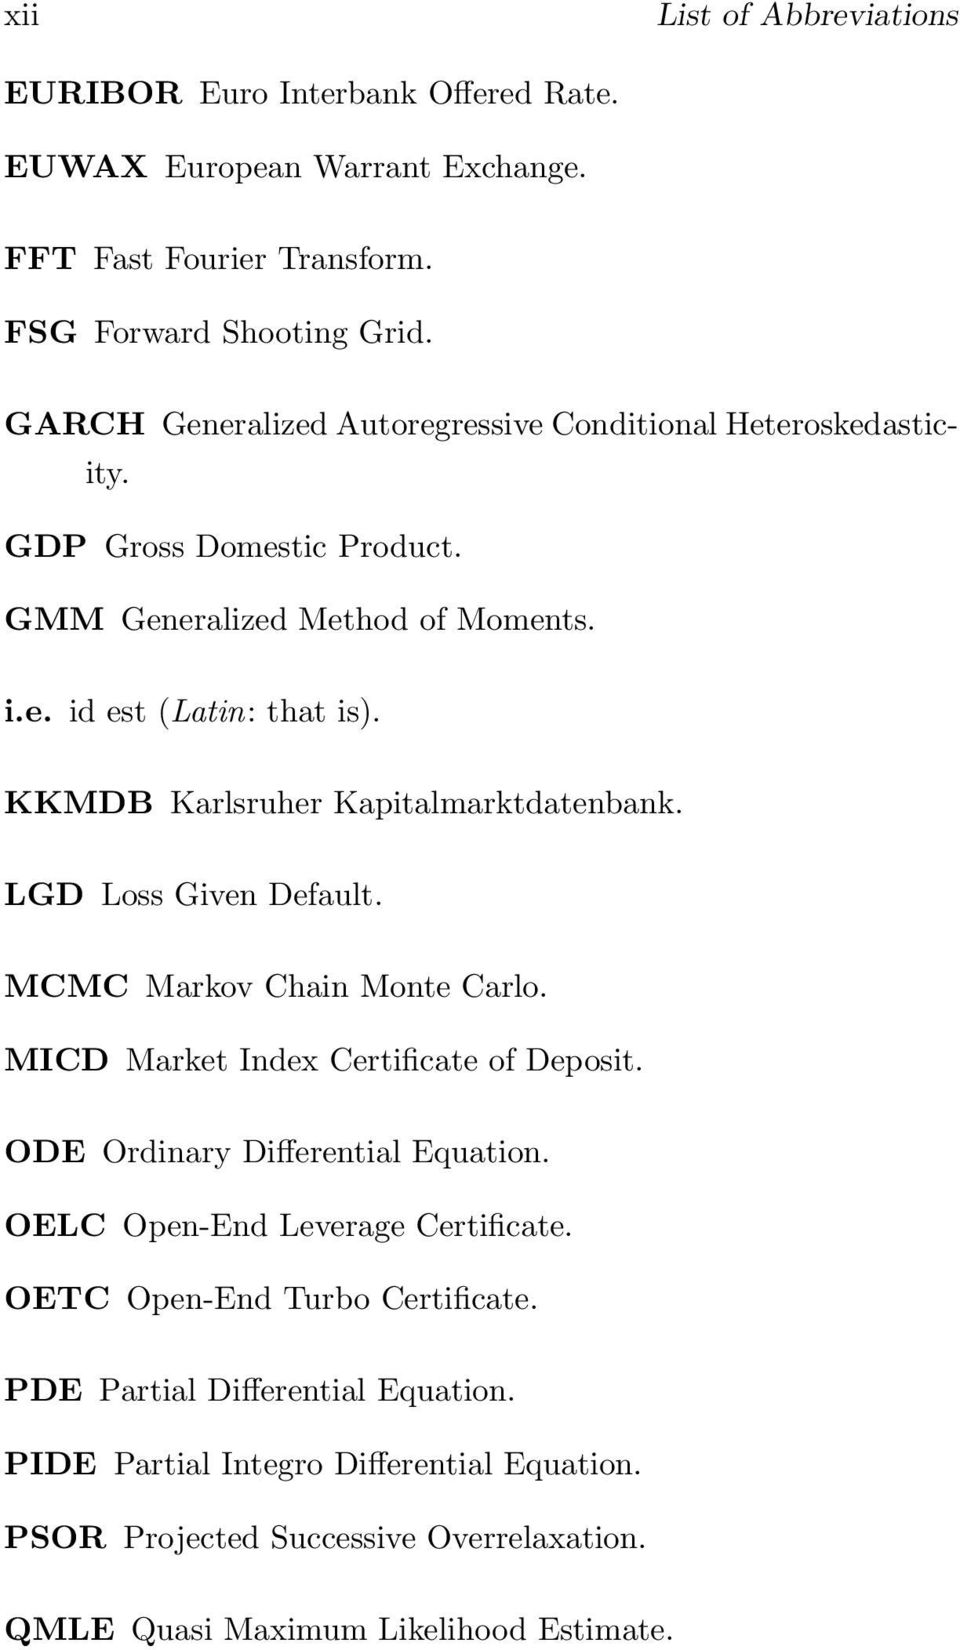 KKMDB Karlsruher Kapitalmarktdatenbank. LGD Loss Given Default. MCMC Markov Chain Monte Carlo. MICD Market Index Certificate of Deposit. ODE Ordinary Differential Equation.